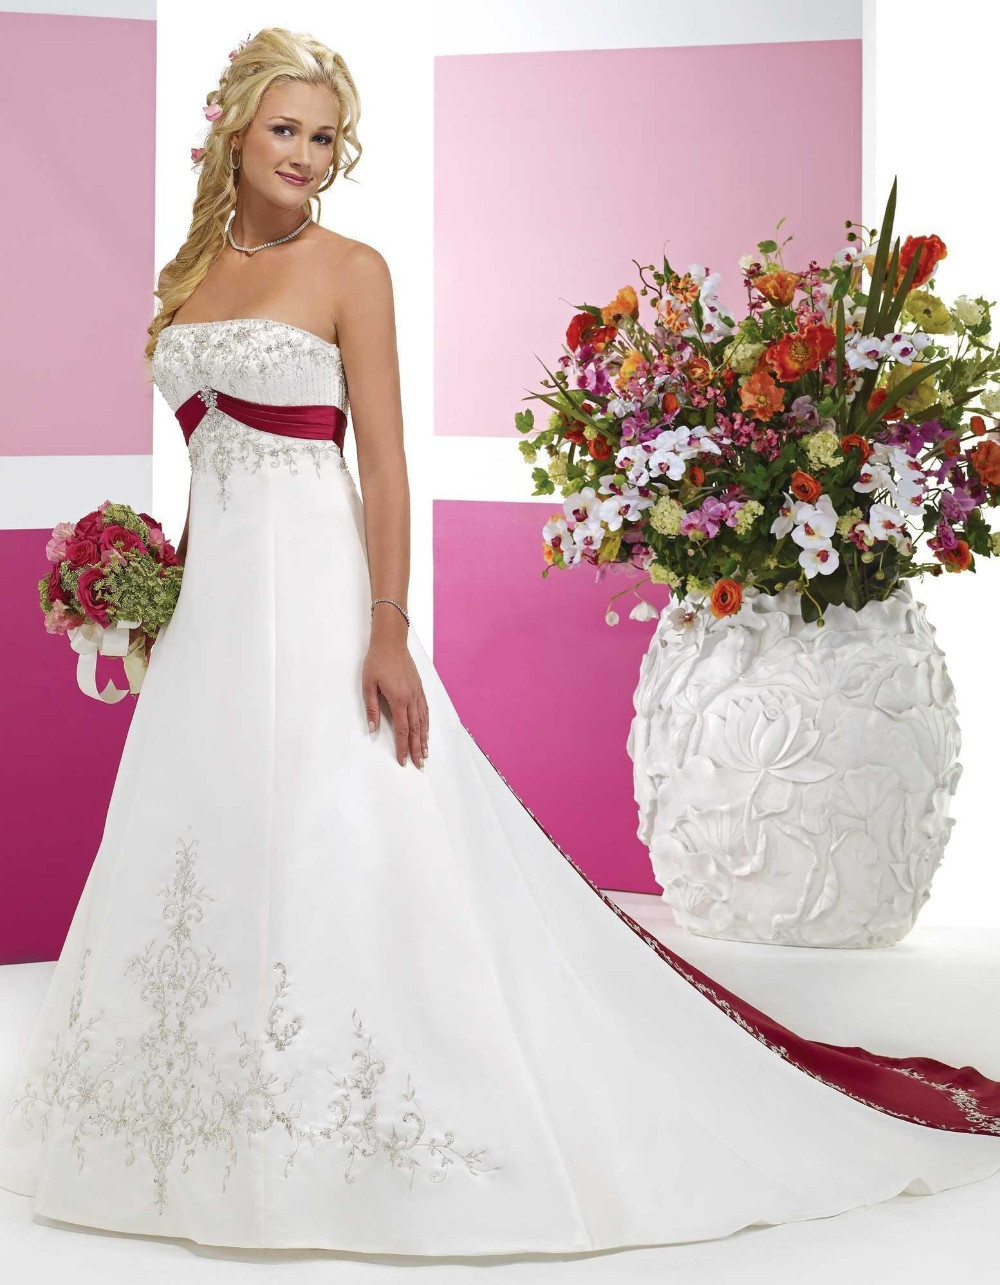 top best red wedding dresses india chinese good luck wedding dresses with red wedding dresses cheap wedding dresses bridal gowns plus size wedding dresses wedding